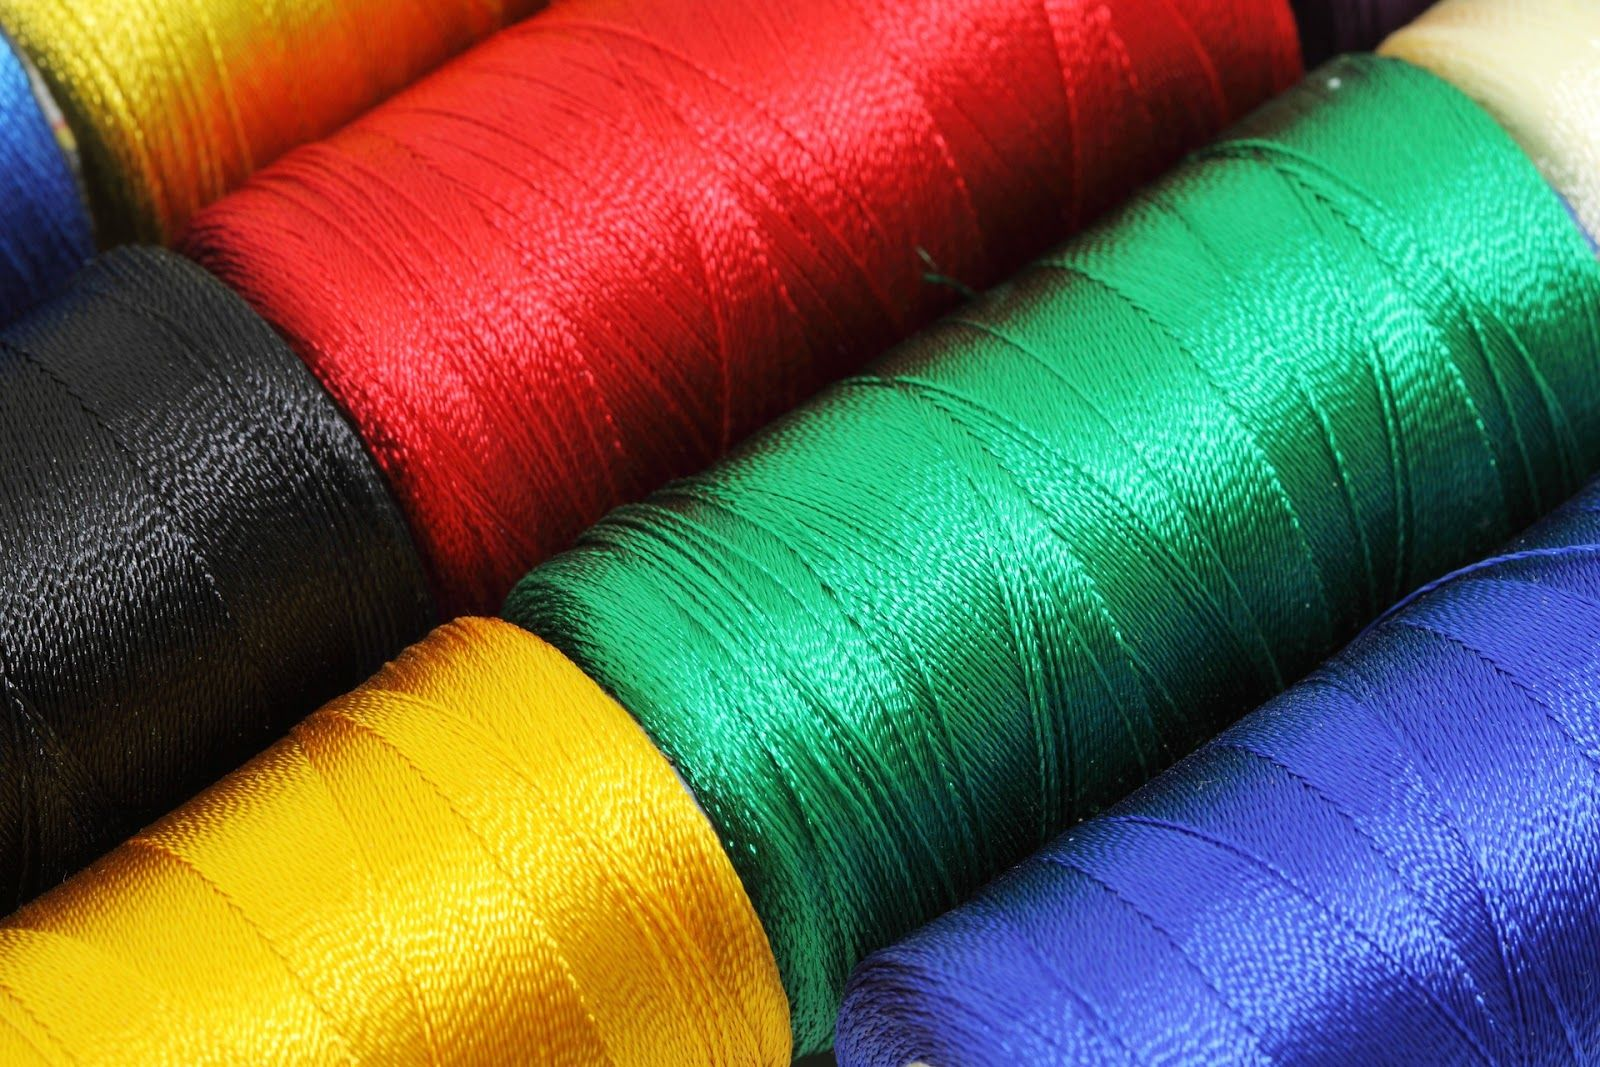 Variety of colored thread